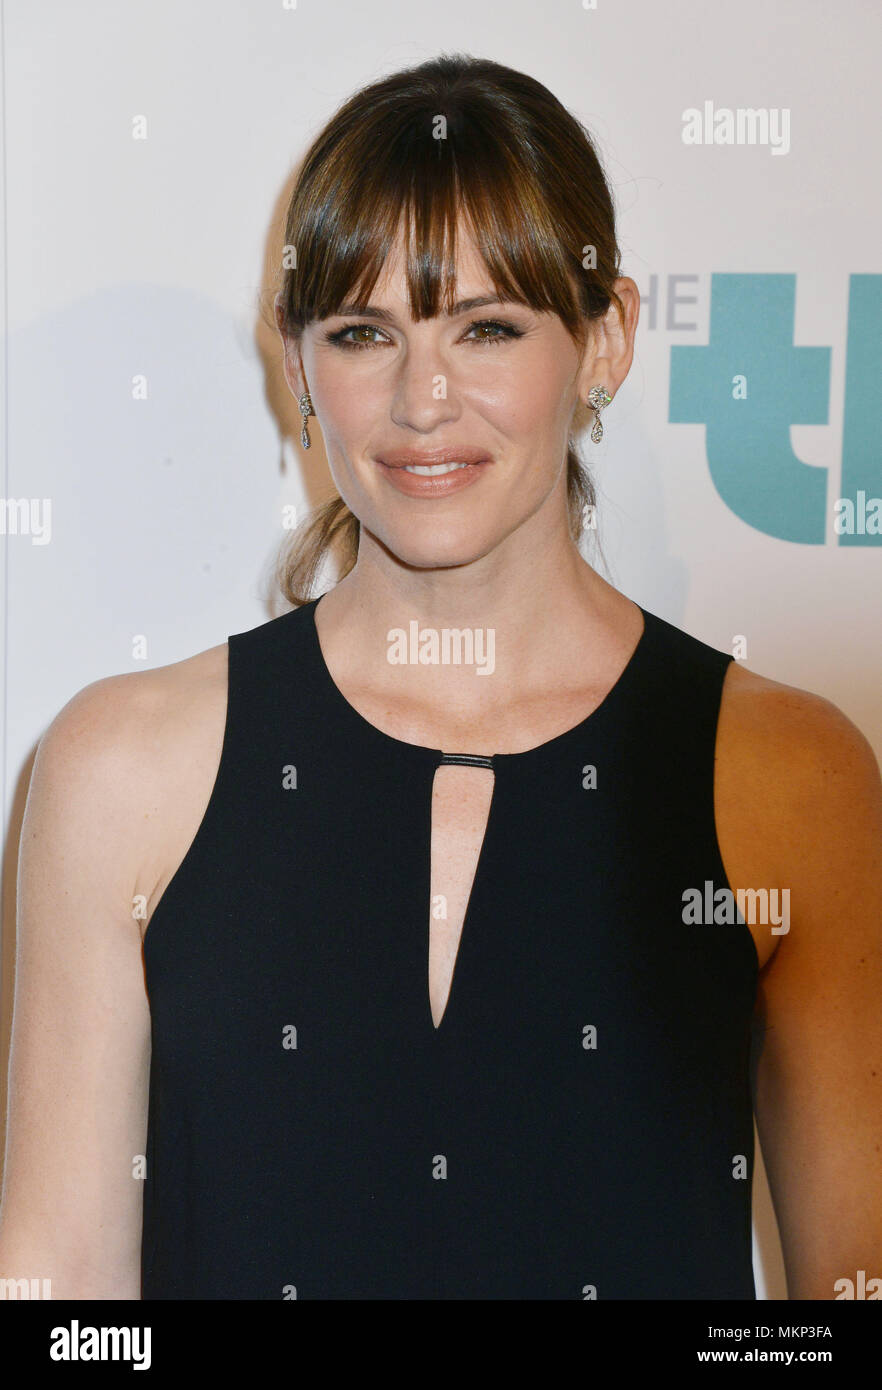 Jennifer Garner at the 5th Ann. Thirst Gala at the Beverly Hilton in Los Angeles. Jennifer Garner 048 Red Carpet Event, Vertical, USA, Film Industry, Celebrities,  Photography, Bestof, Arts Culture and Entertainment, Topix Celebrities fashion /  Vertical, Best of, Event in Hollywood Life - California,  Red Carpet and backstage, USA, Film Industry, Celebrities,  movie celebrities, TV celebrities, Music celebrities, Photography, Bestof, Arts Culture and Entertainment,  Topix, headshot, vertical, one person,, from the year , 2014, inquiry tsuni@Gamma-USA.com - Stock Image